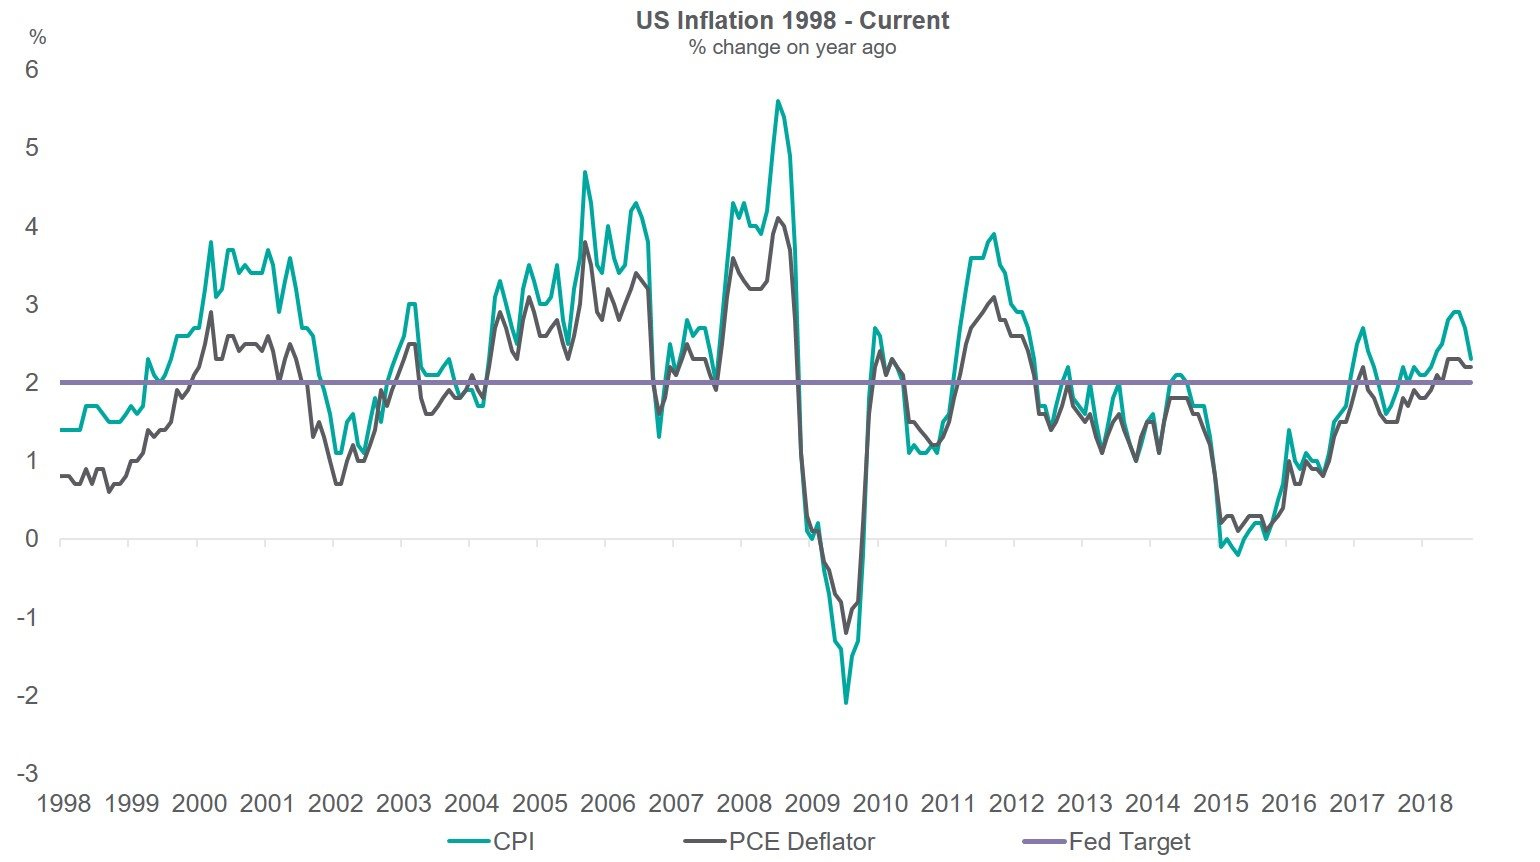 US Inflation 1998 - Current graph